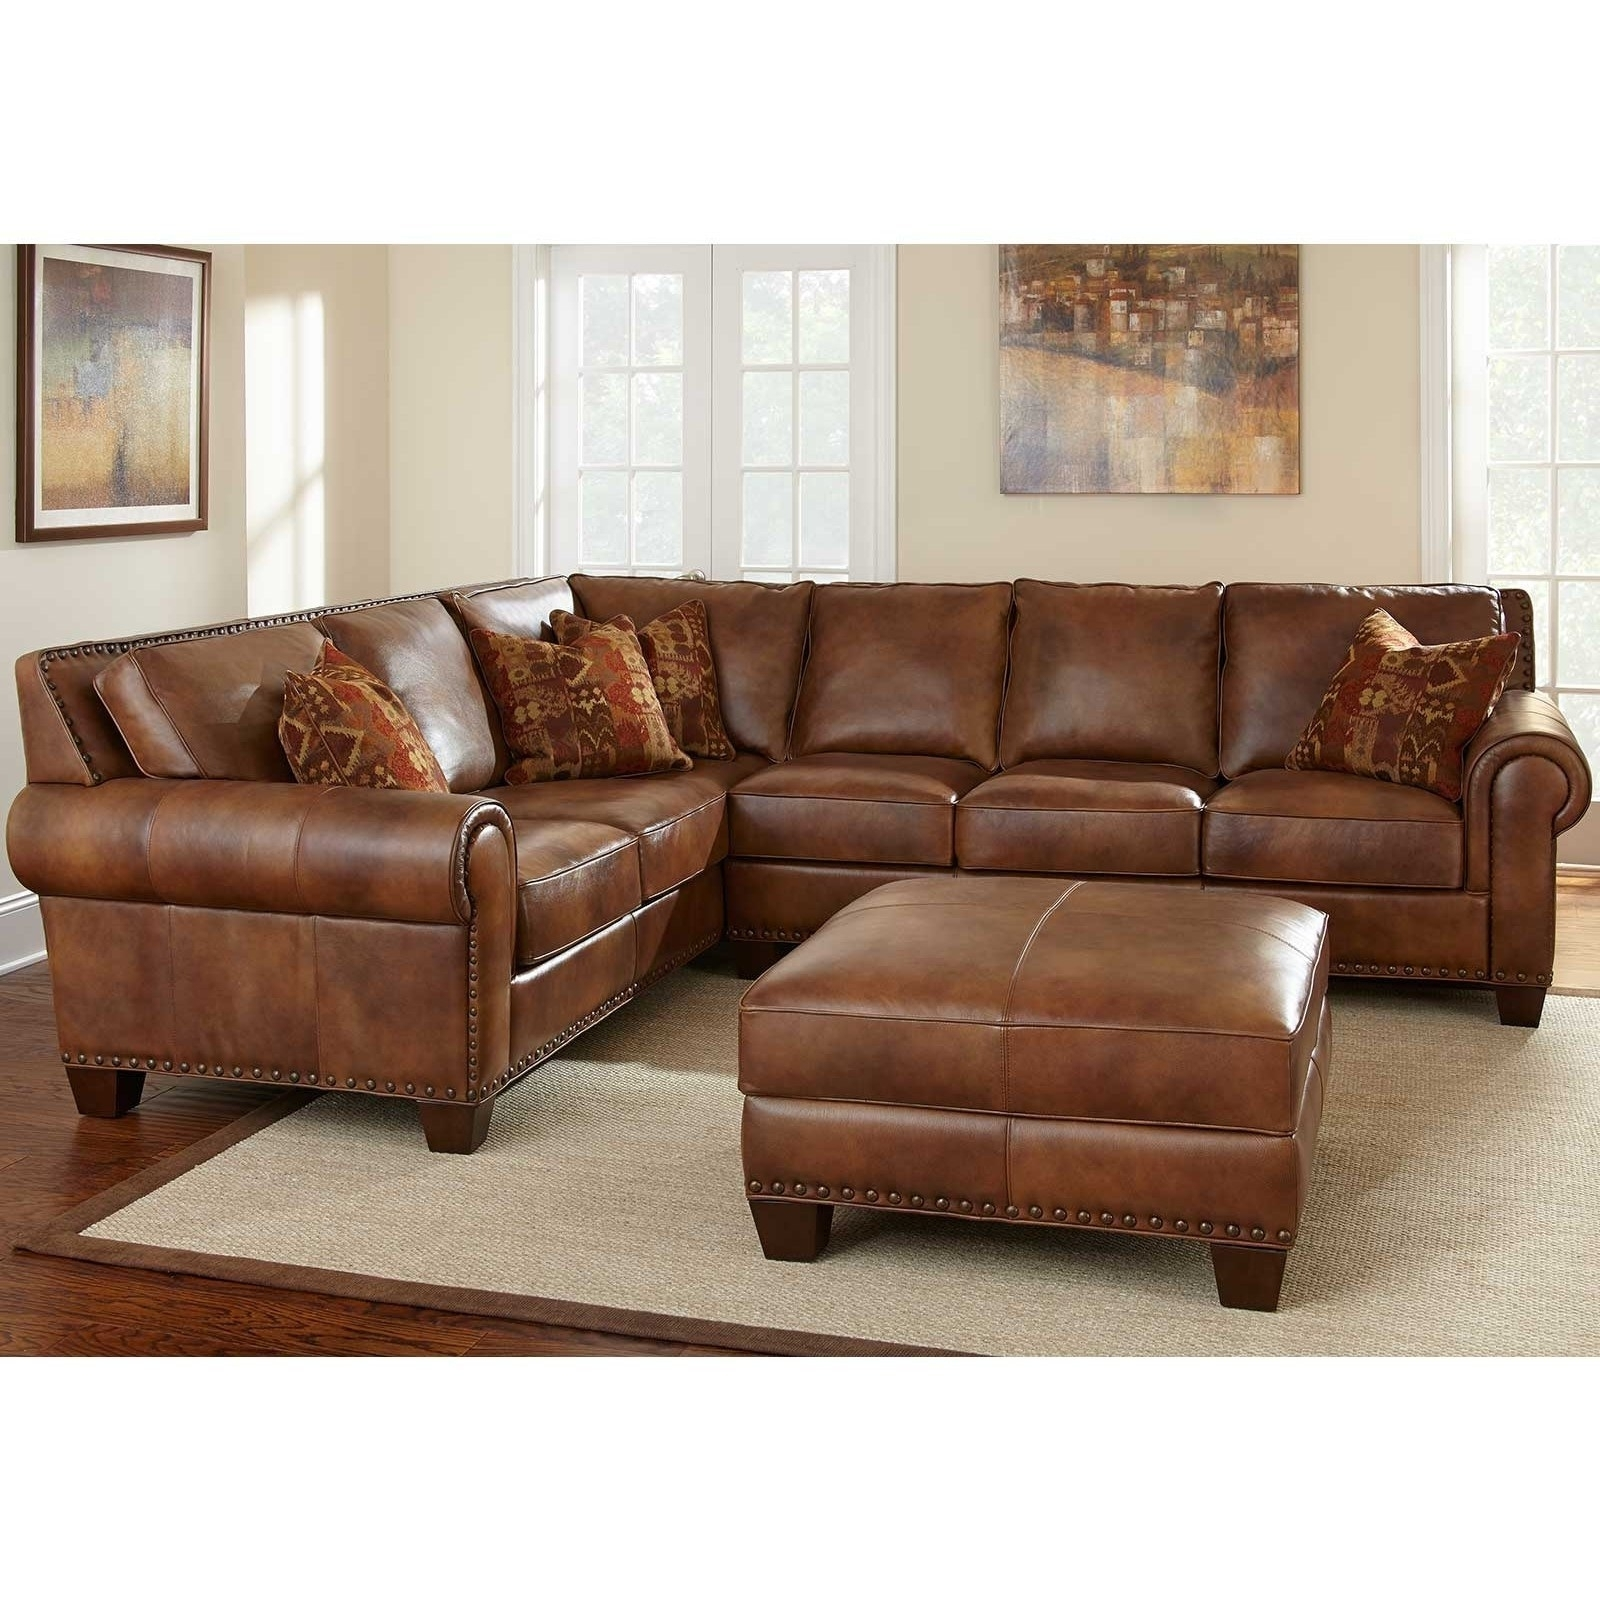 Sectional Sofa Design: Glamour Leather Sectional Sofas On Sale Within Current Sectional Sofas By Size (View 12 of 20)